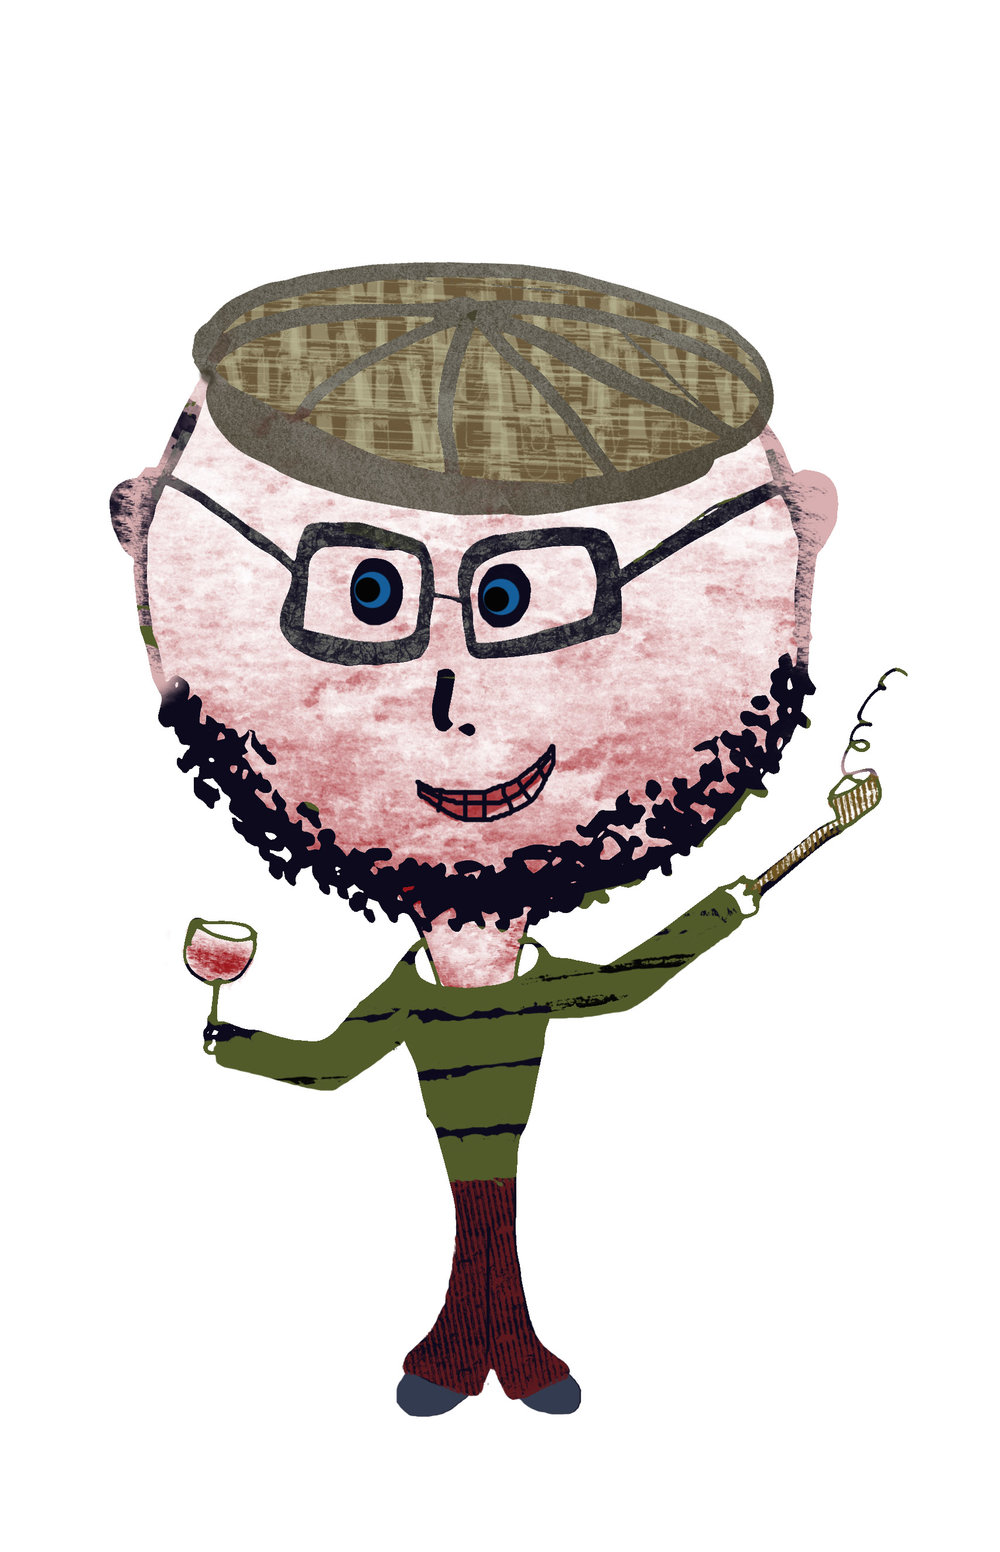 Matthew's World of Wine and Drink - Welcome to my blog in which I write about the different wine regions, styles, and grape varieties of the world. It's based from an educational persepctive, and you'll find posts on the WSET, their courses, and how to navigate them. There's also an educational podcast for you to listen to while you're travelling about. Add to that posts on beer, spirits, and the overall culture of drinks, and you'll find plenty to peruse!